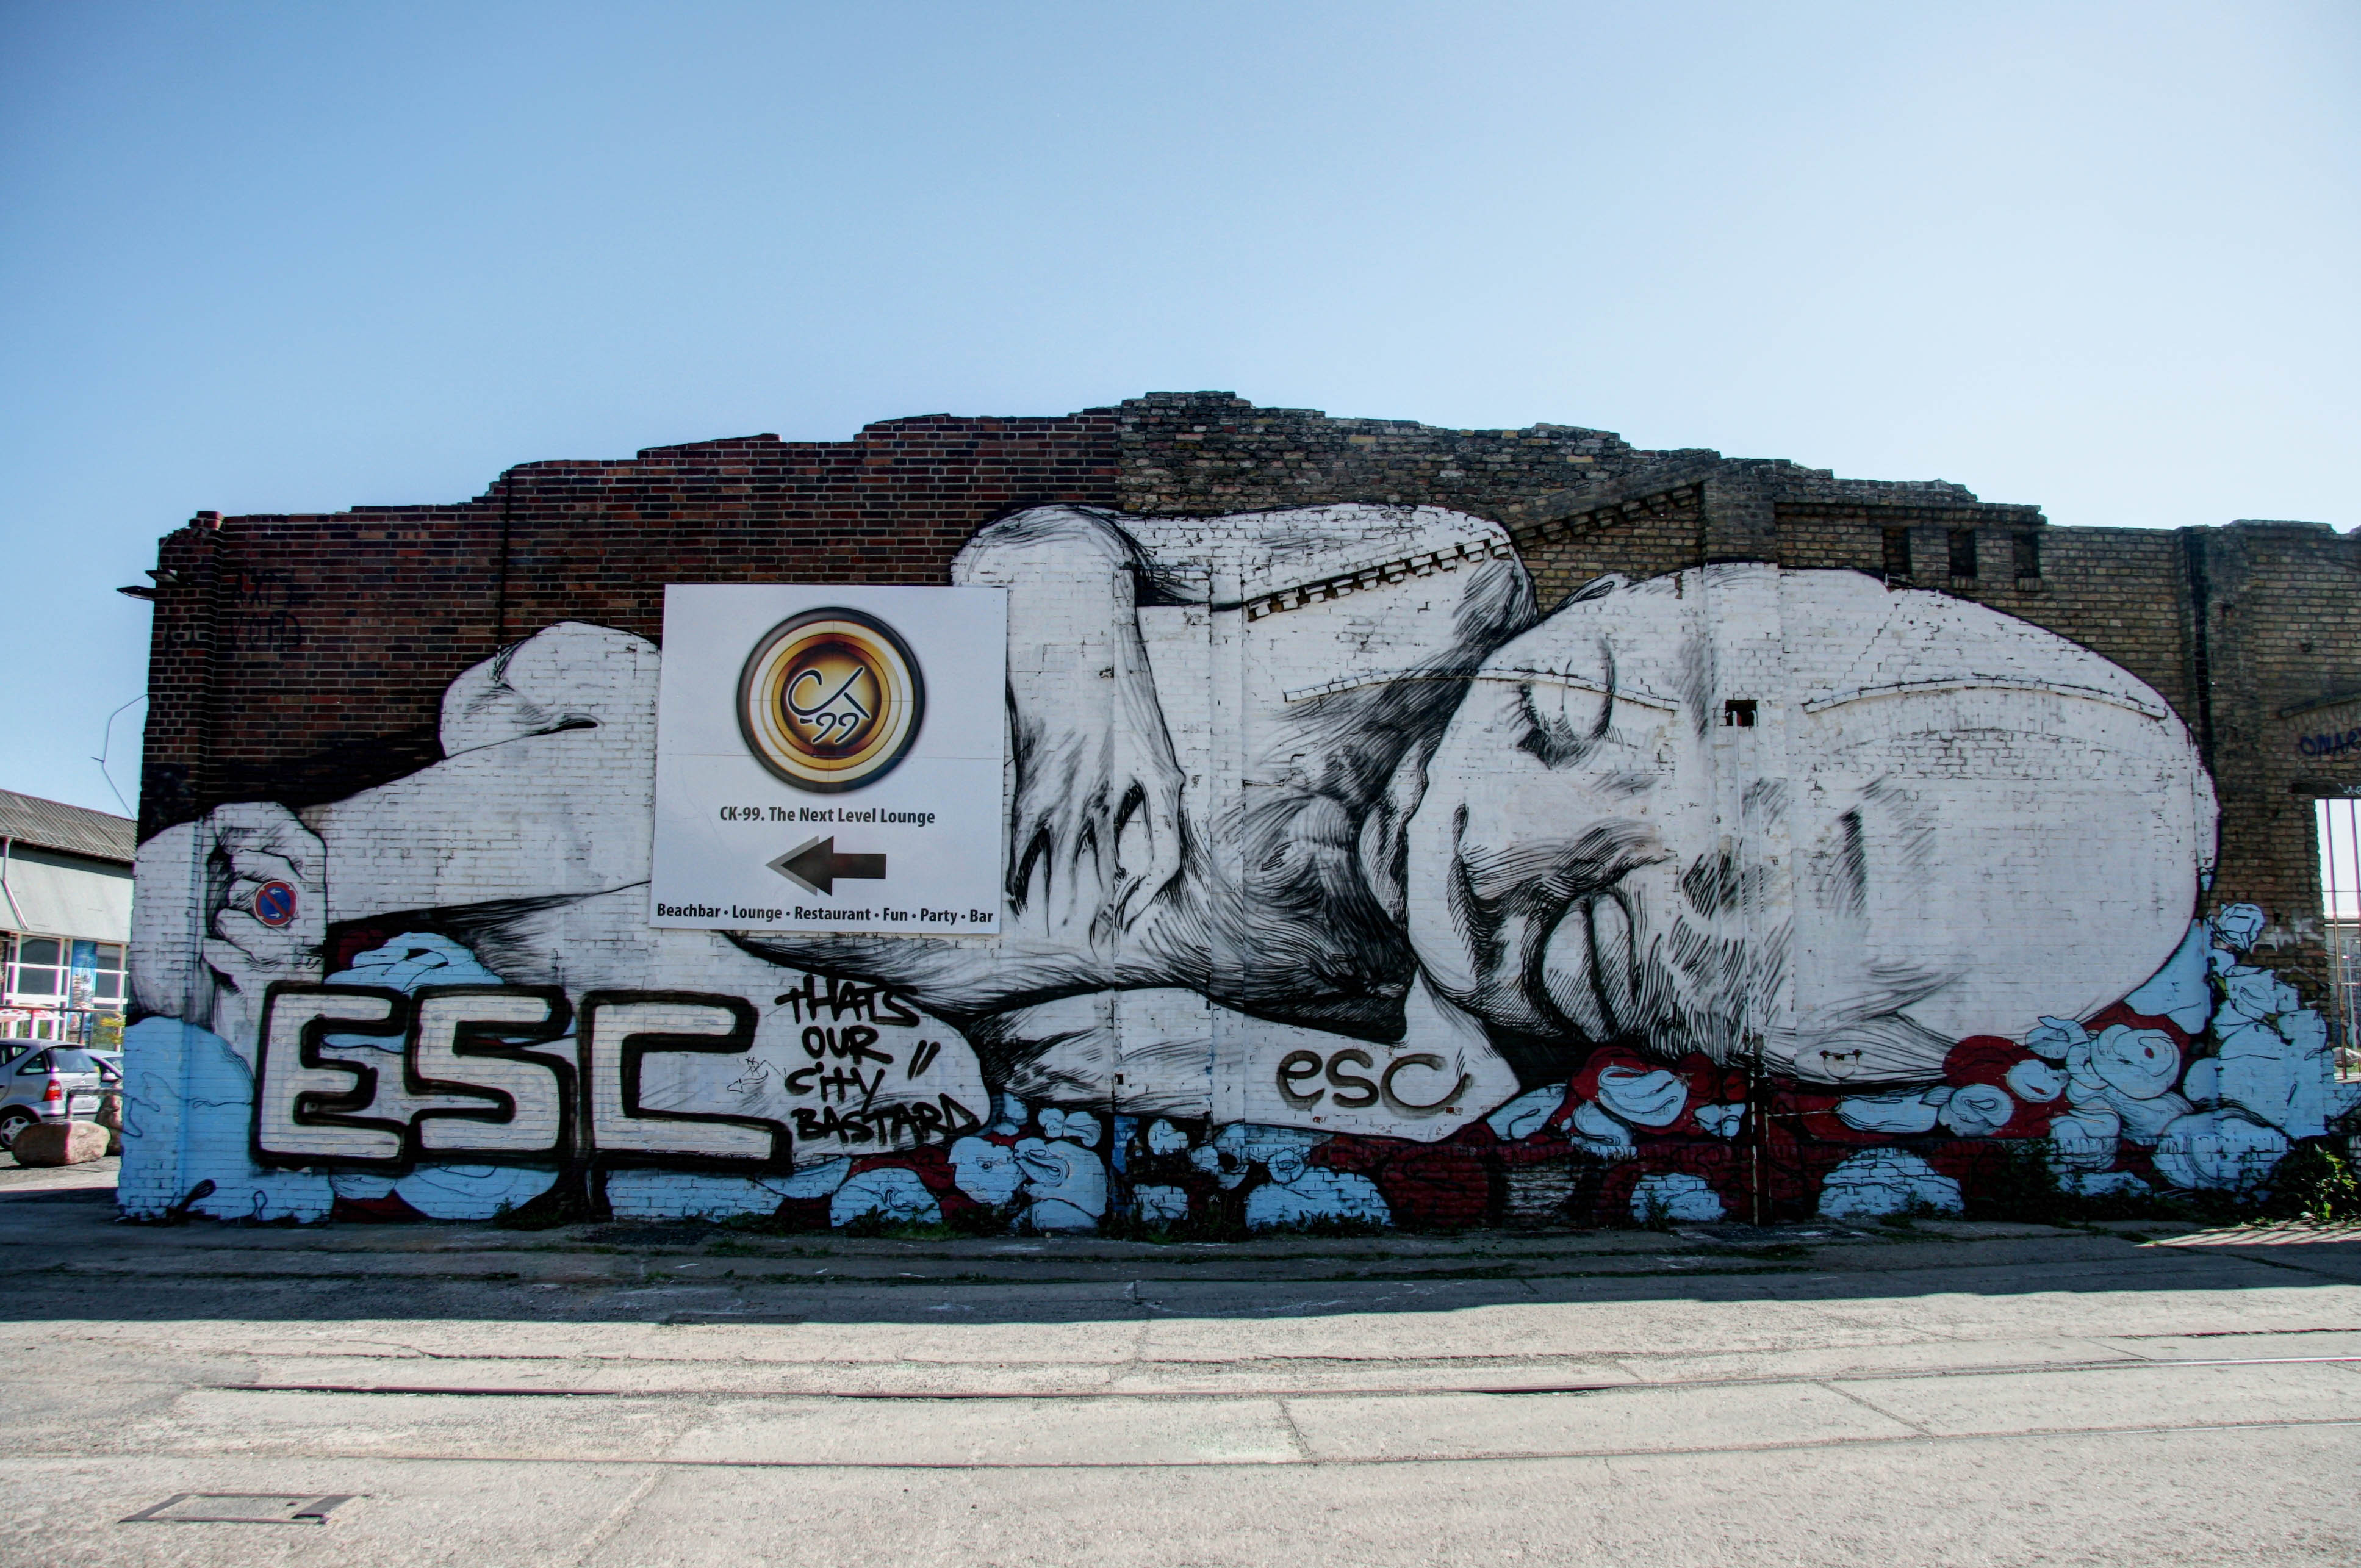 Sleeping: Street Art by AXEL VOID for Wände ohne Ende in Berlin